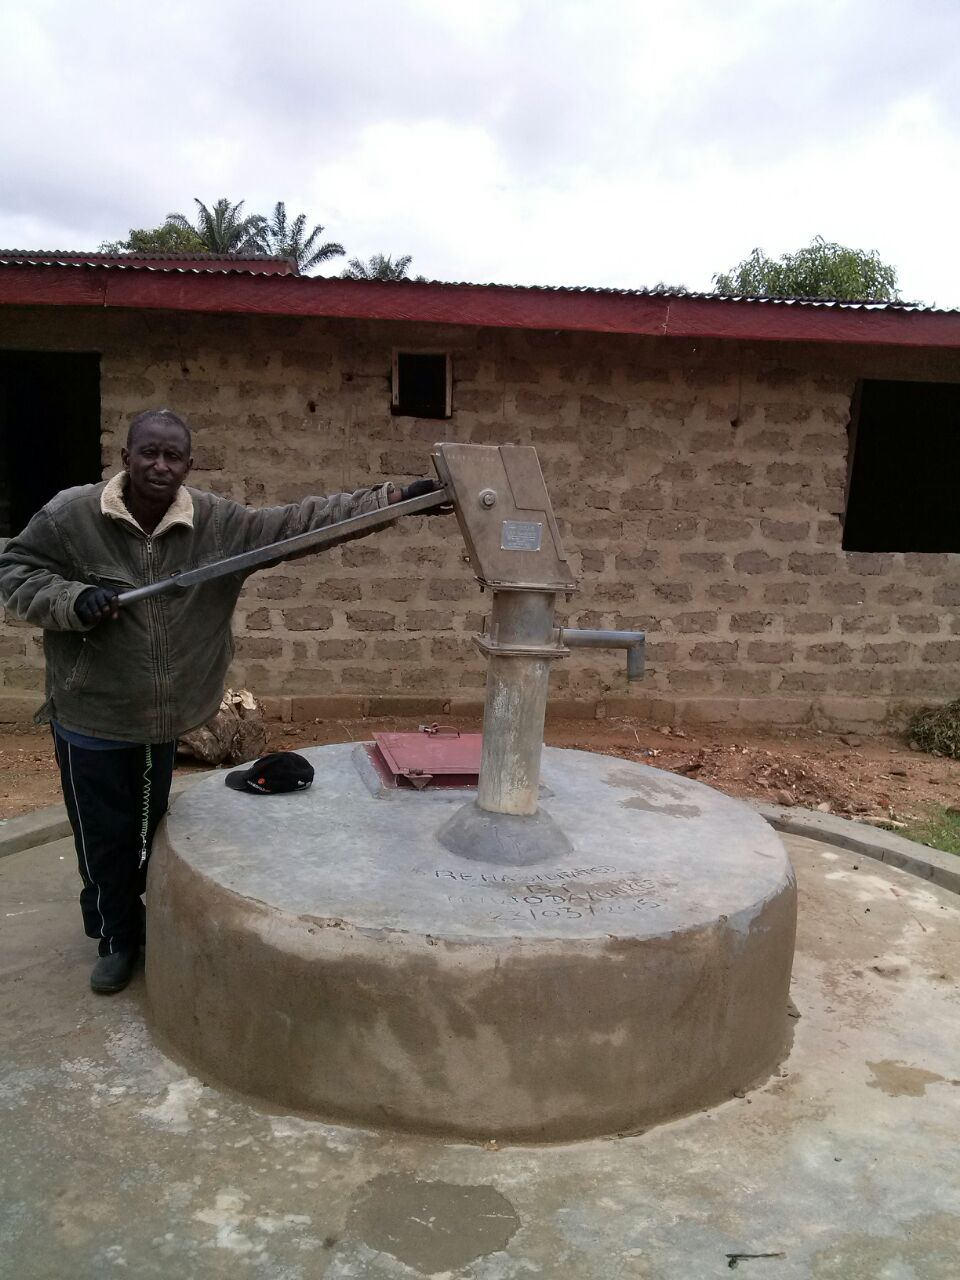 The new well will be similar to this one